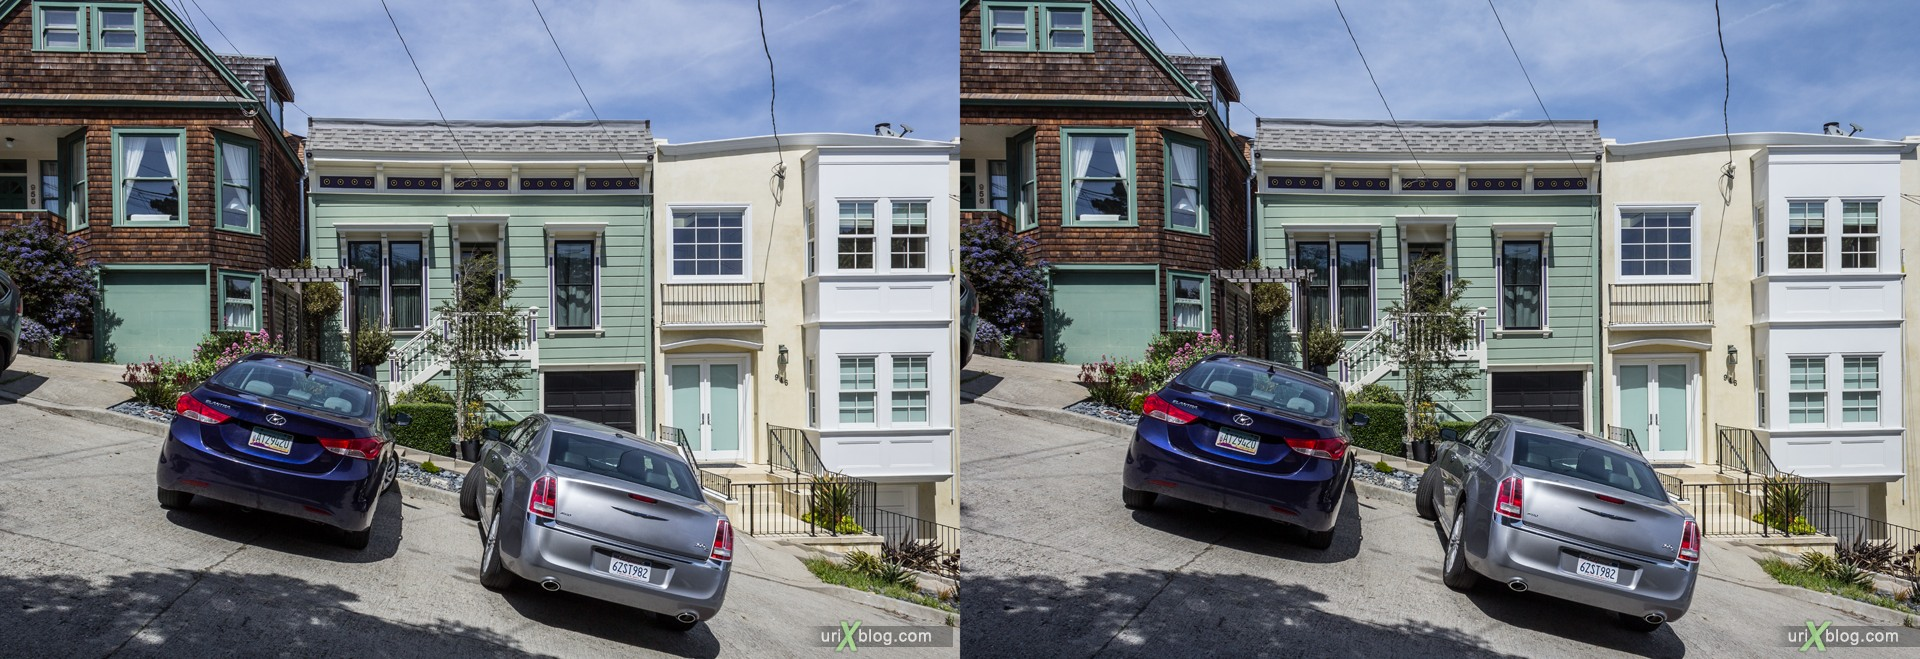 2013, Castro, Dolores Heights, San Francisco, USA, 3D, stereo pair, cross-eyed, crossview, cross view stereo pair, stereoscopic